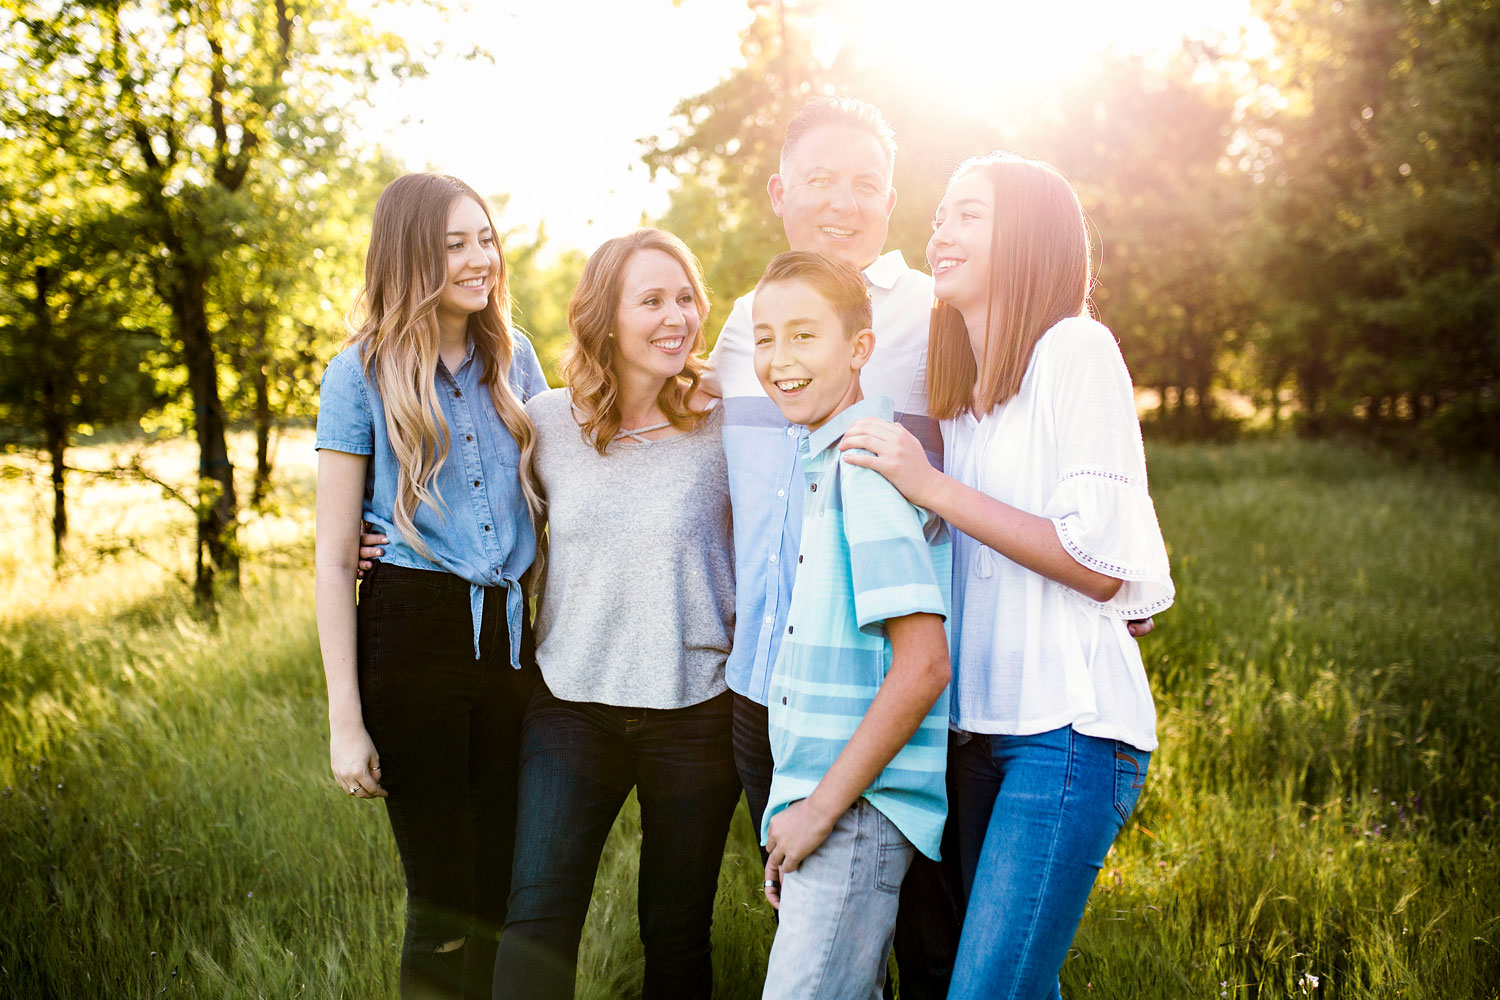 A family smiles and laughs together during their time with Amy Wright Photography in Northen California.